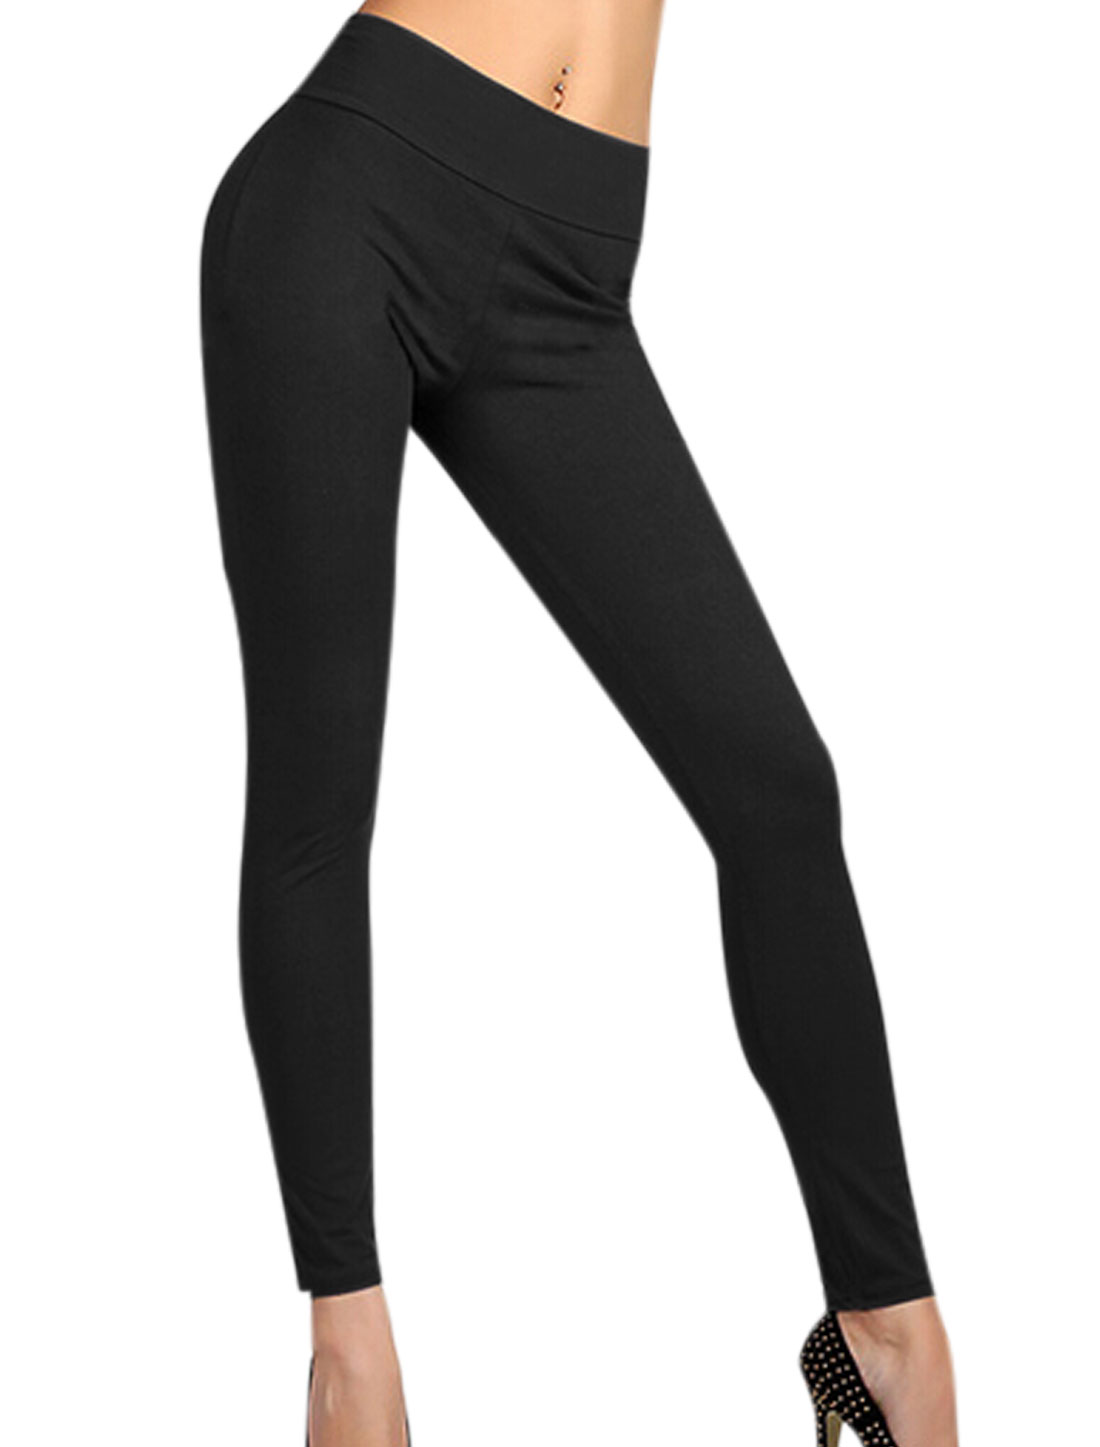 Natural Waist Zipper Back Casual Leggings for Women Black L